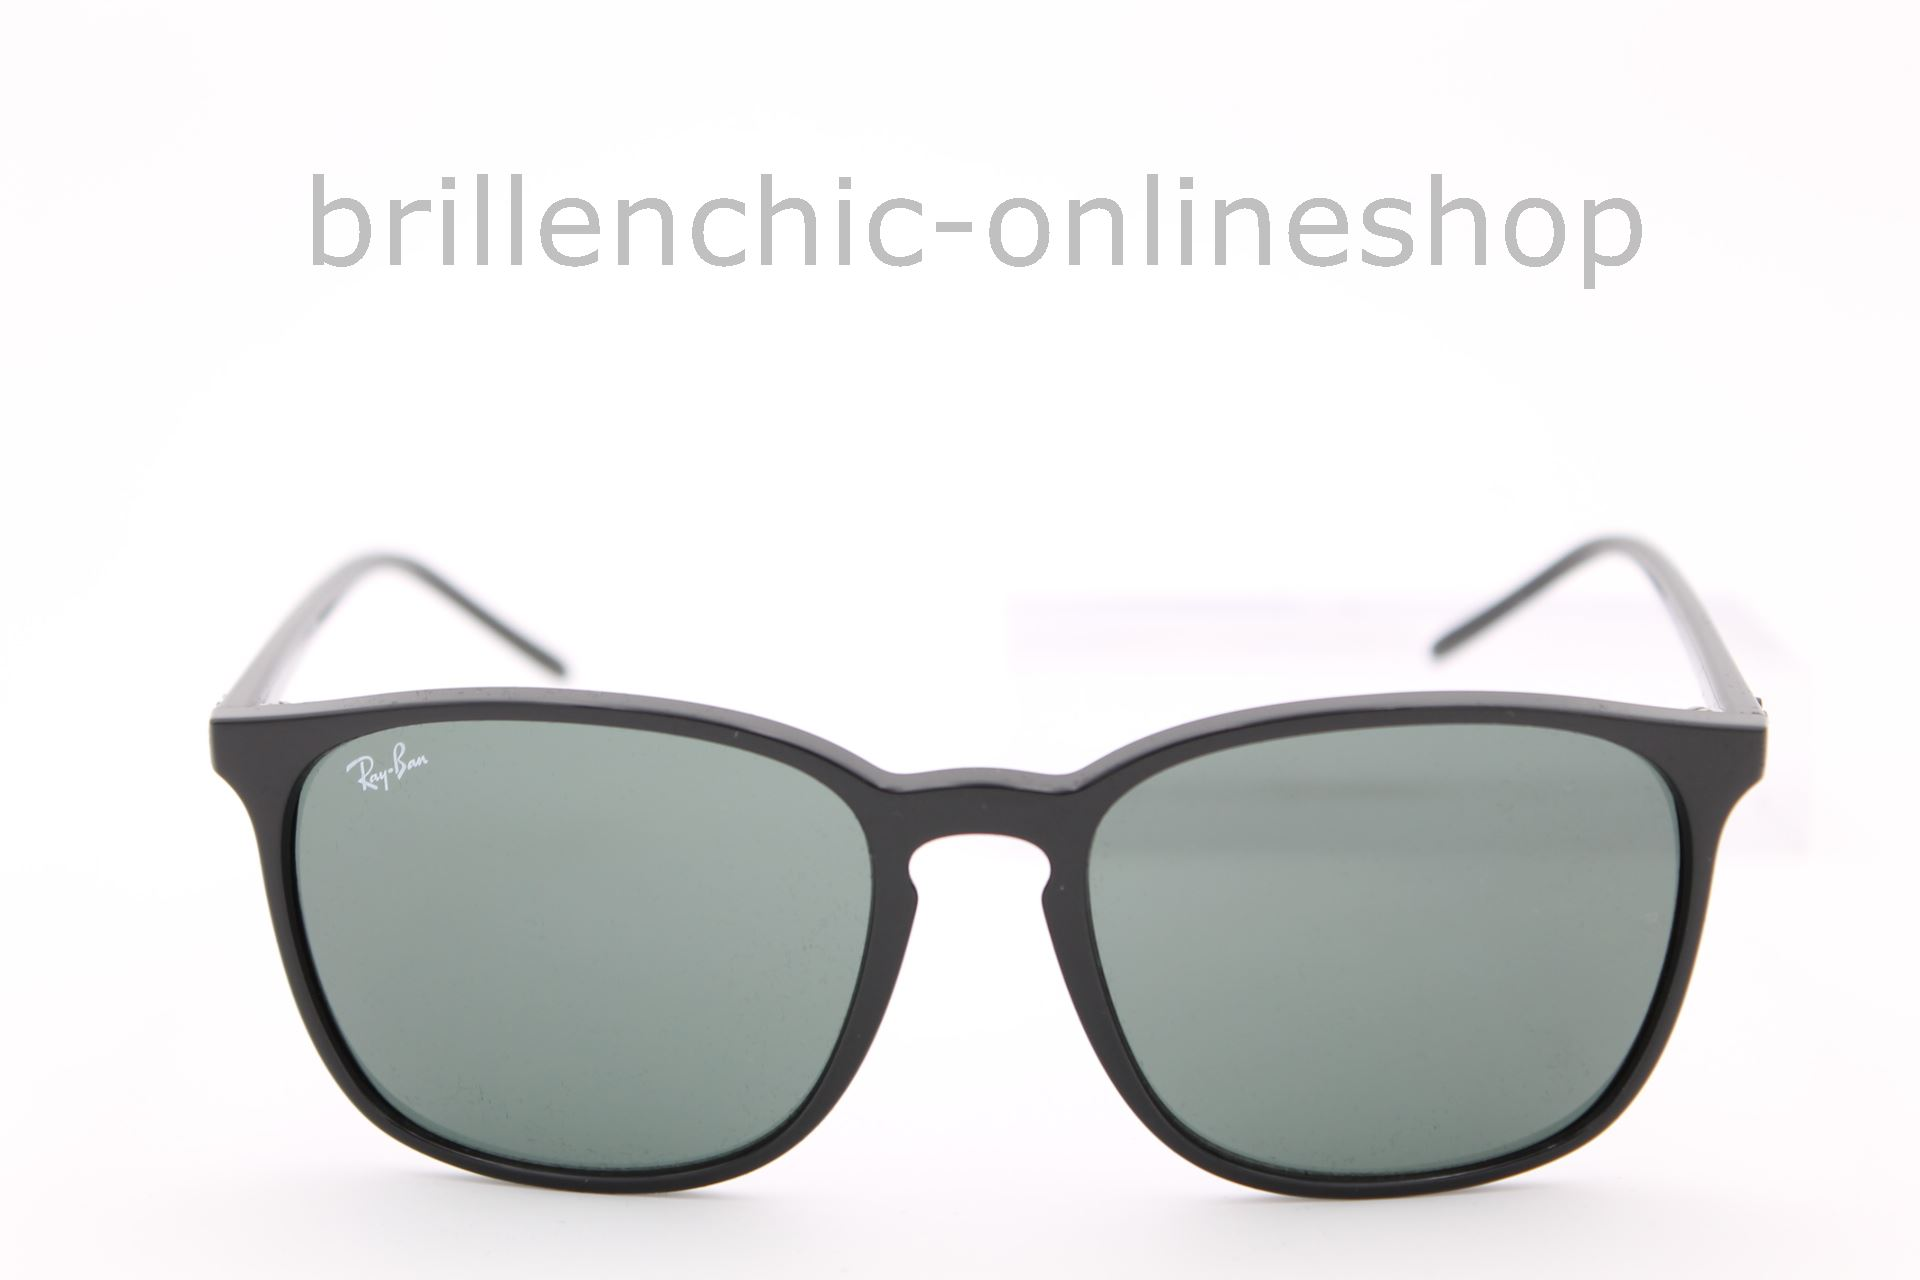 2f3121b35912f Brillenchic-onlineshop in Berlin - Ray Ban RB 4387 601 71